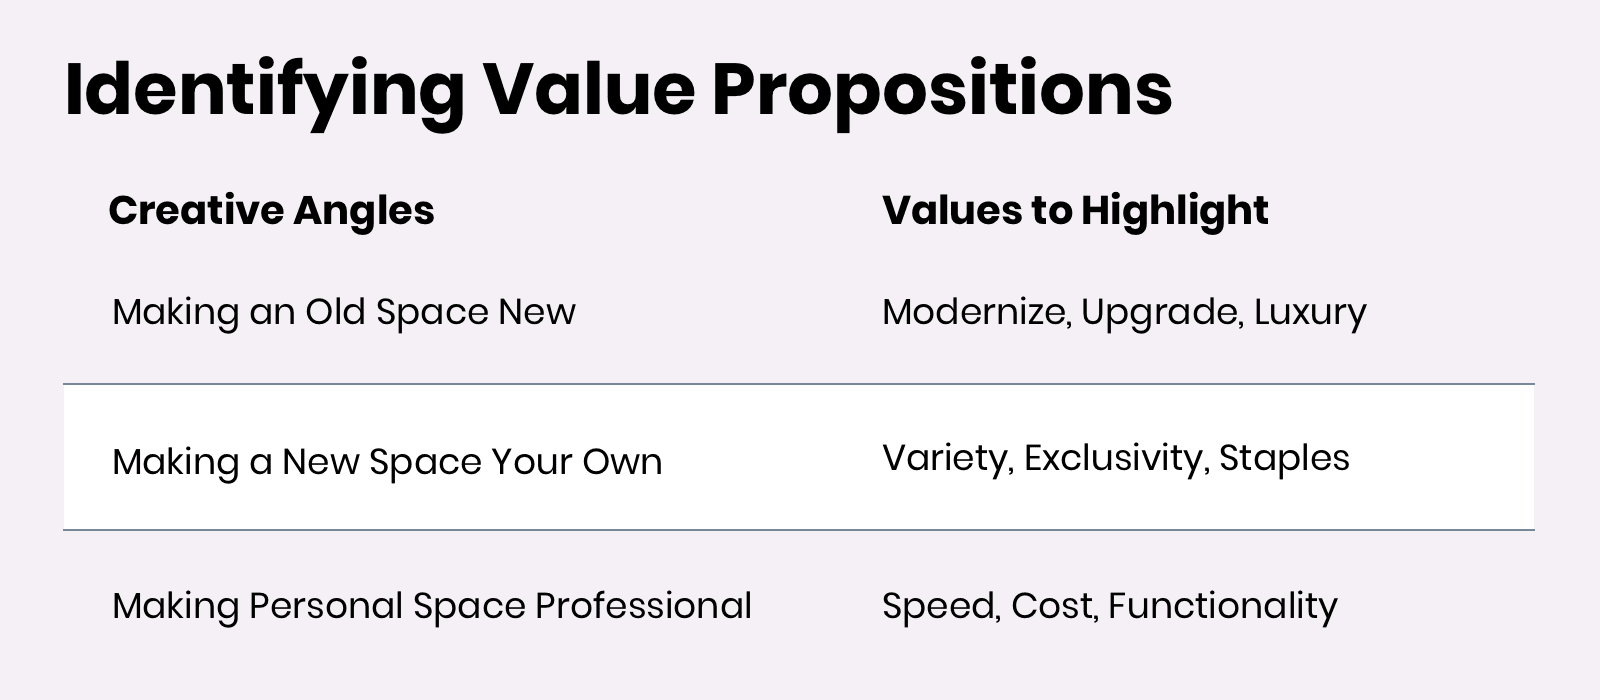 identifying value propositions with creative angles and values to highlight